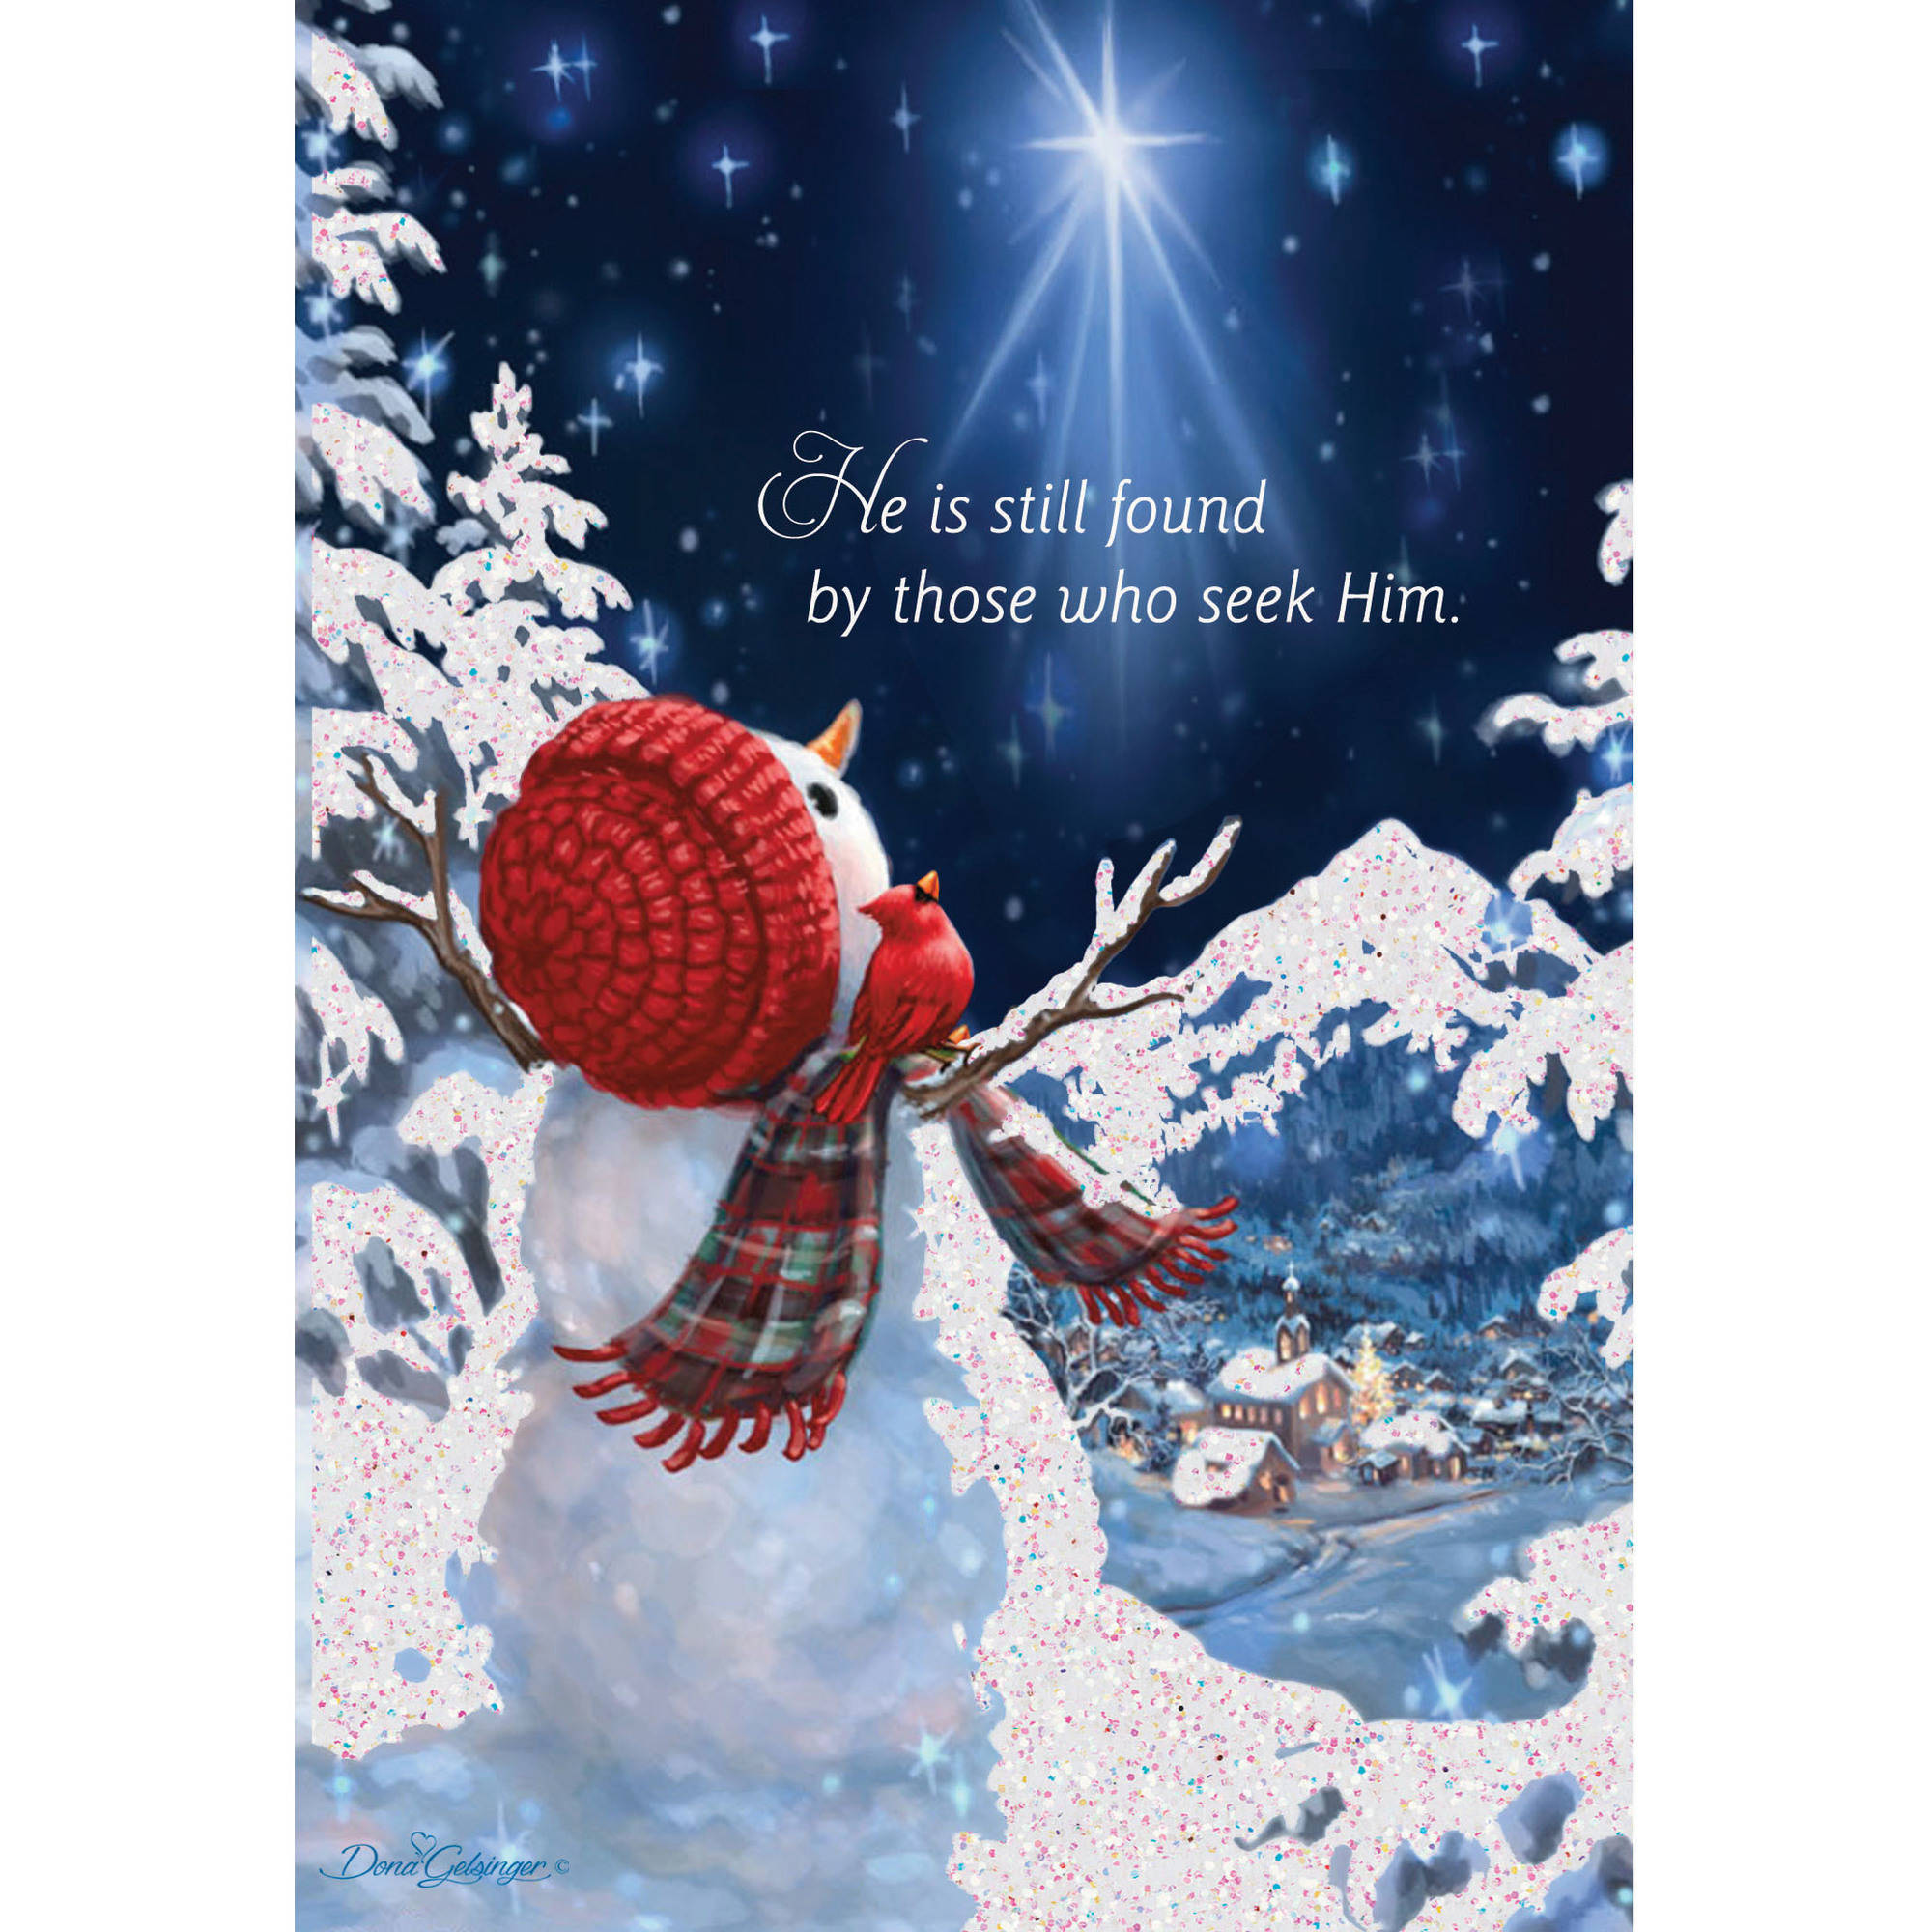 DaySpring Inspirational Boxed Christmas Cards Snowman